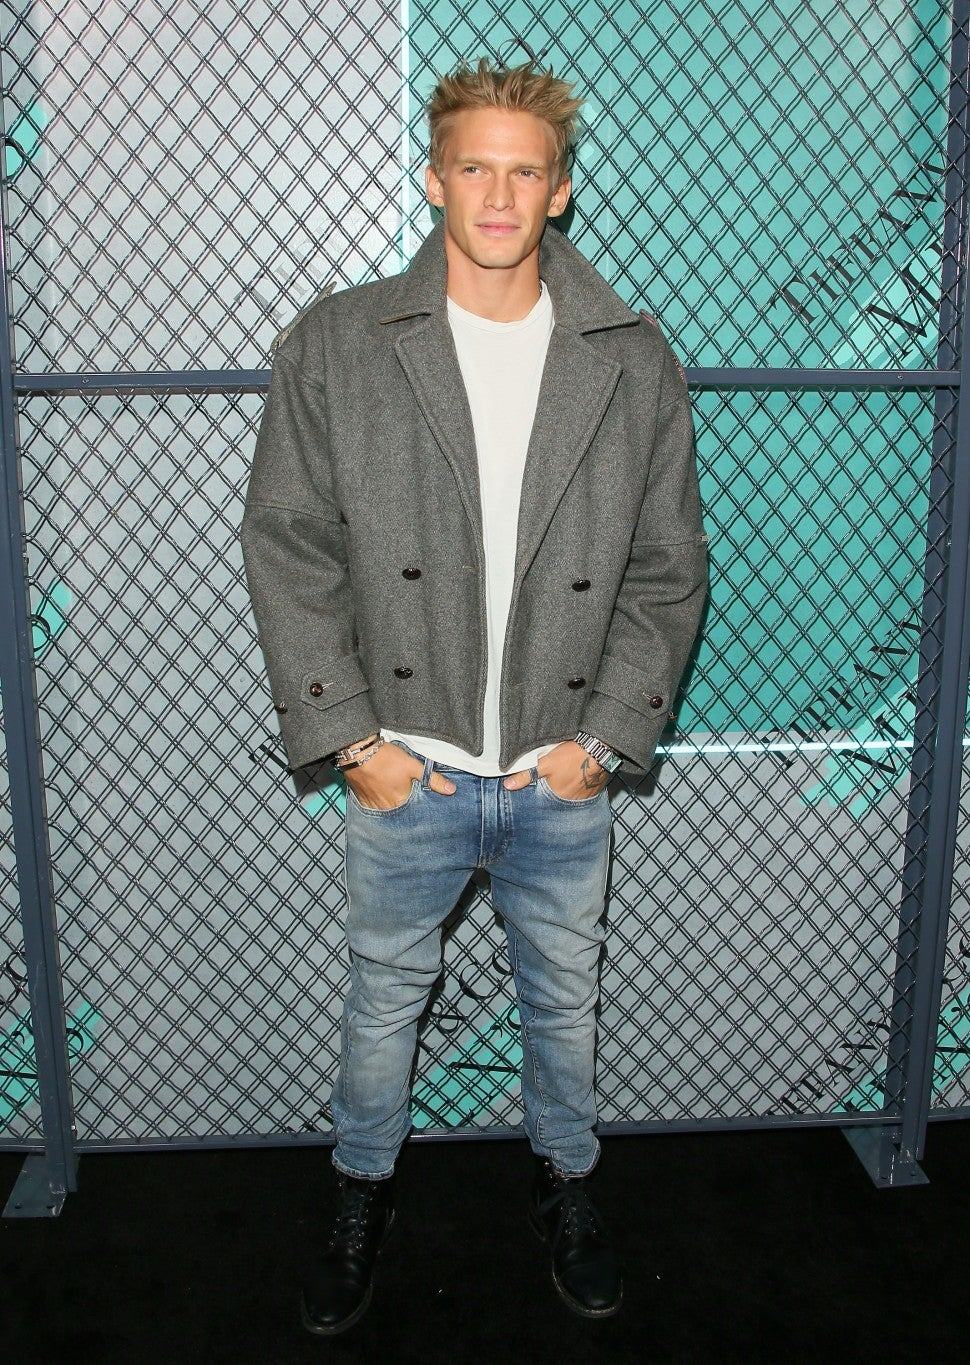 cody simpson at tiffany event on oct 11